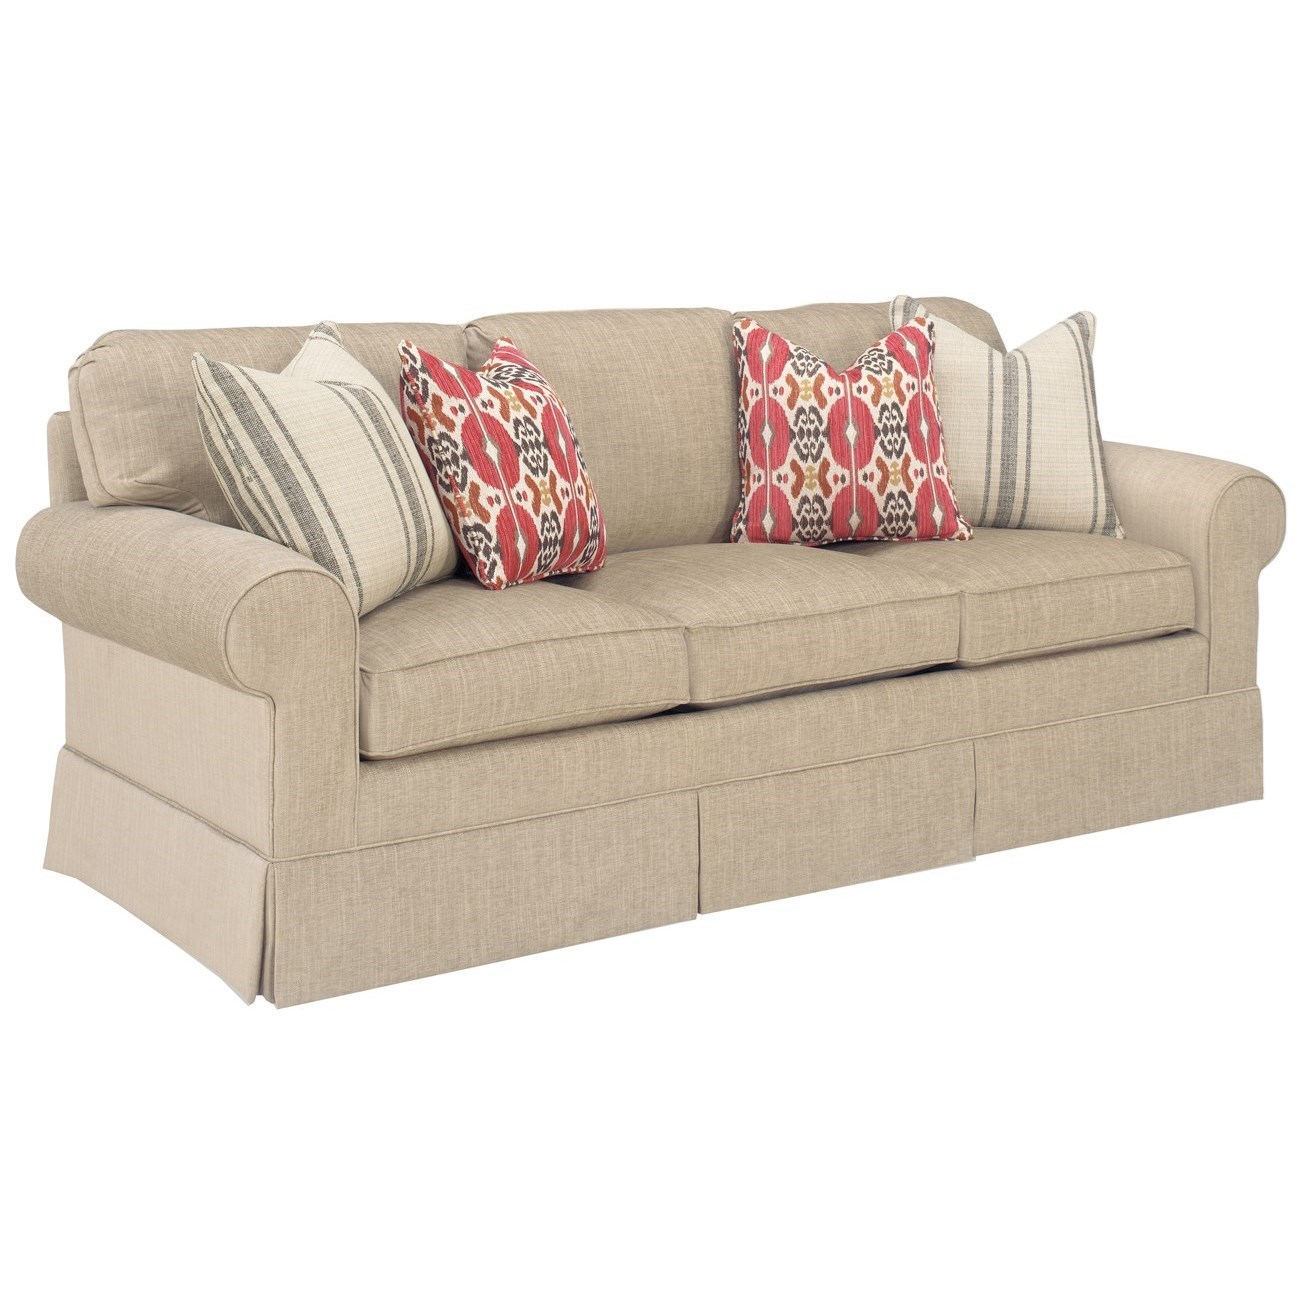 Lexington Personal Design SeriesBedford Customizable Sleeper Sofa ...